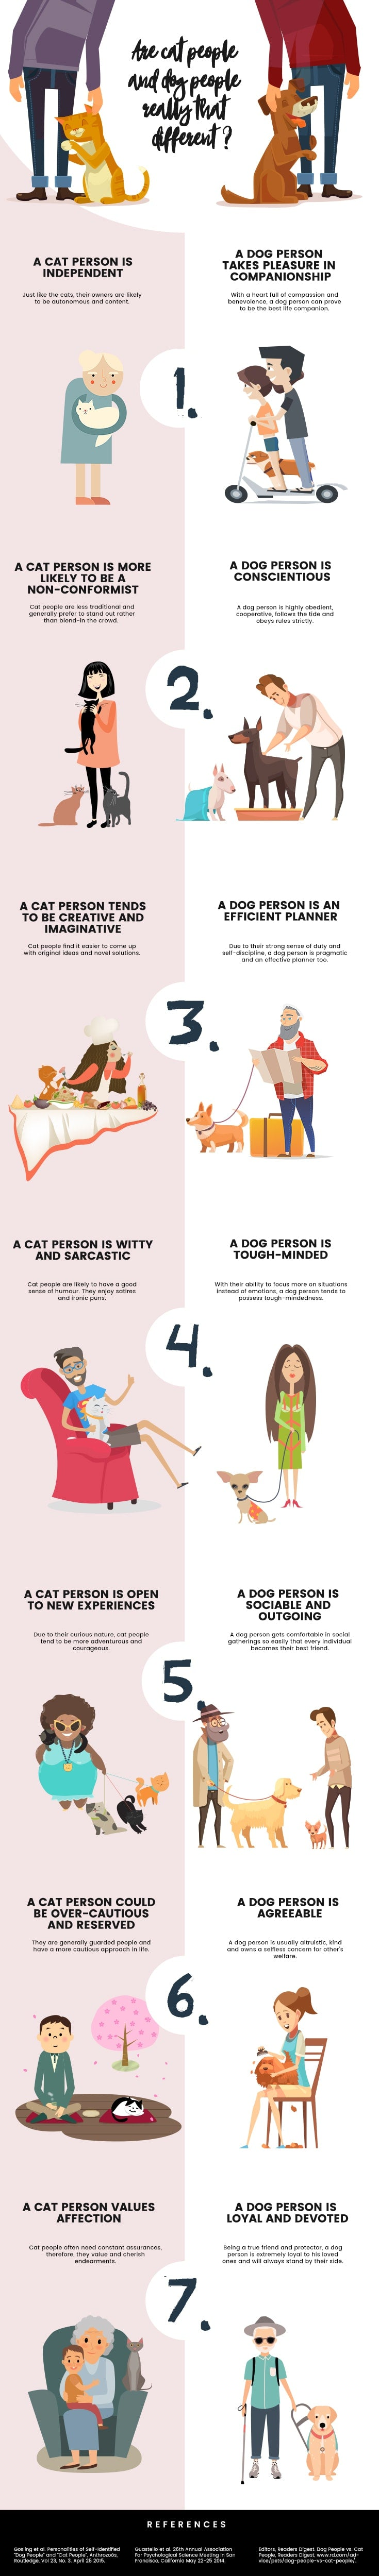 Are you a Cat Person or Dog Person